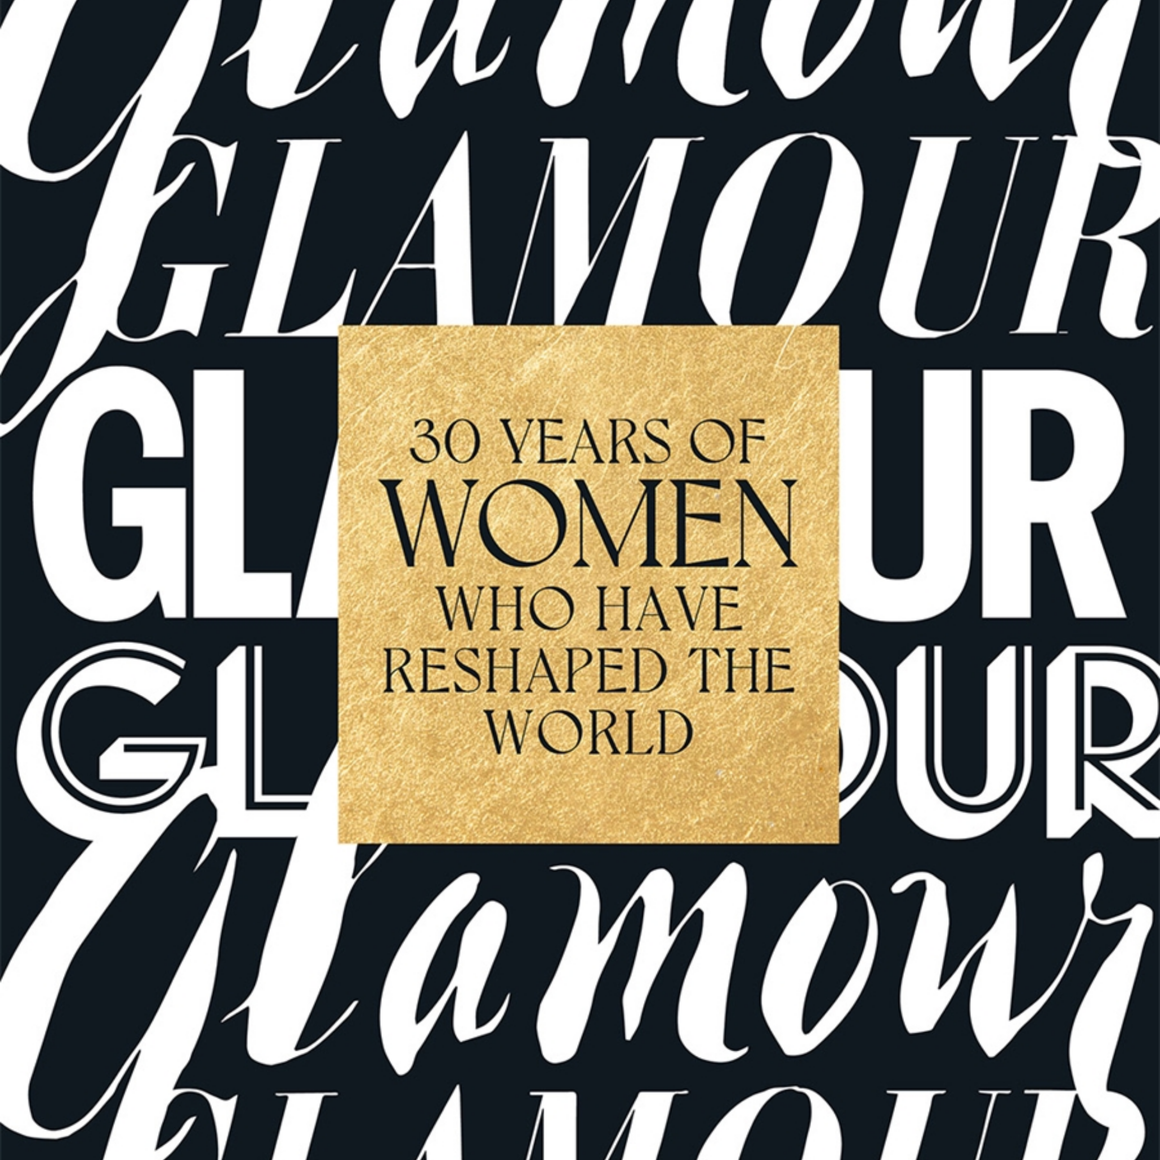 GLAMOUR: 30 YEARS OF WOMEN WHO HAVE RESHAPED THE WORKD